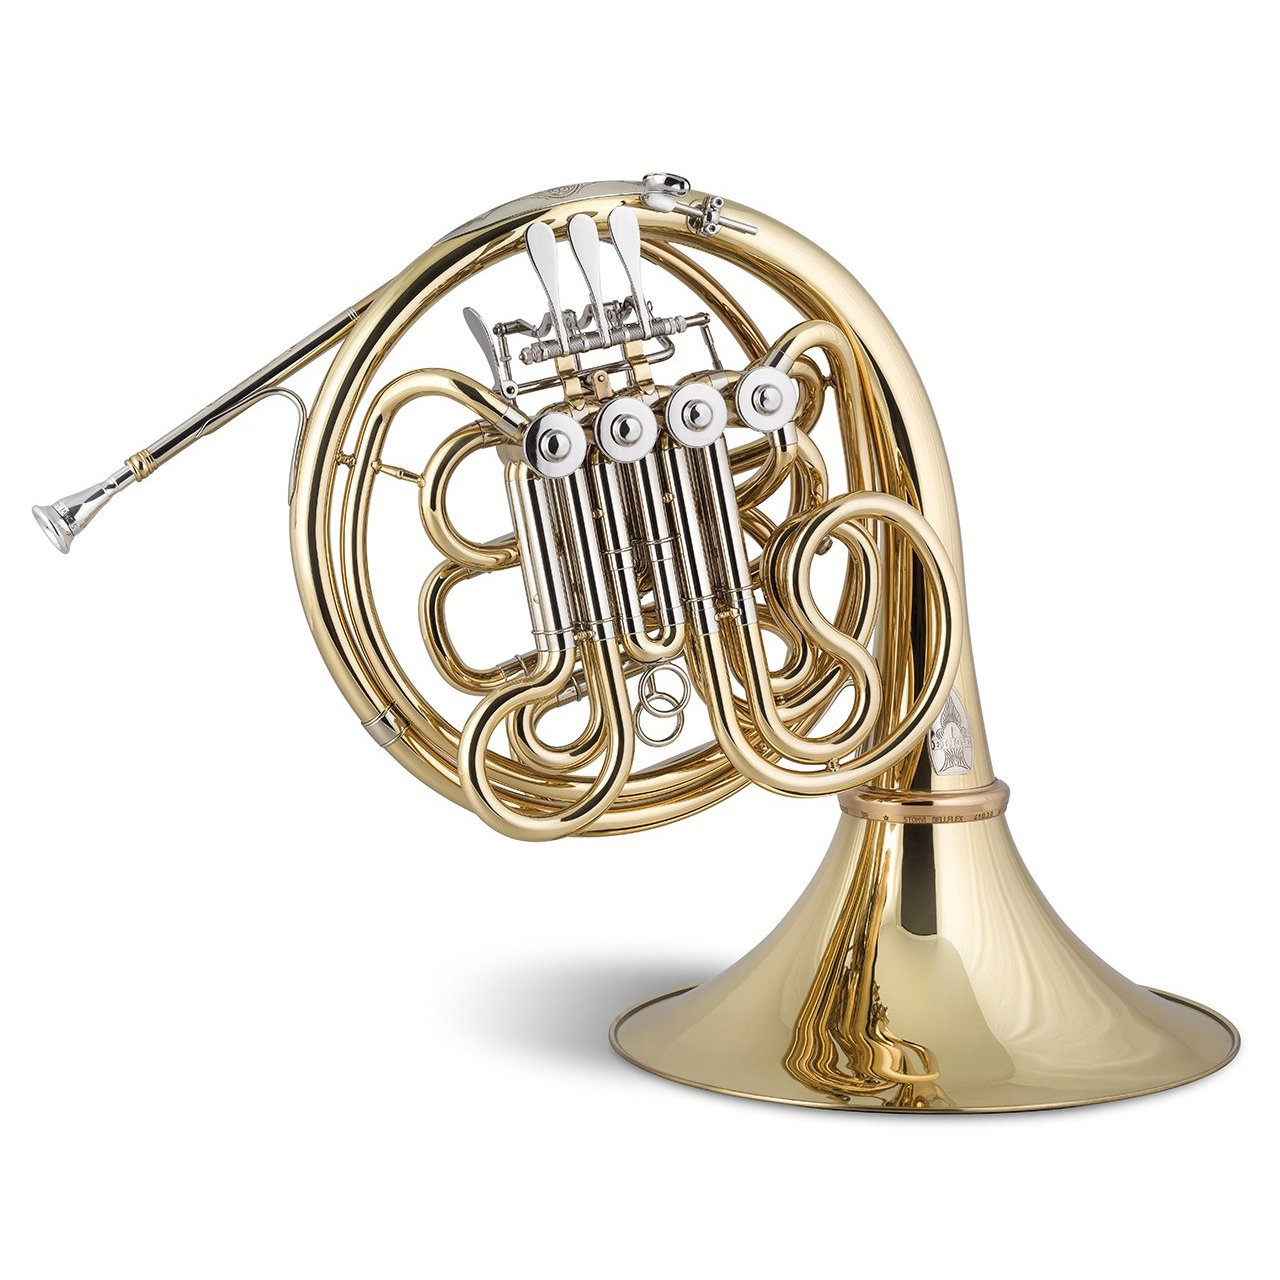 Stomvi - Elite Bb/F Double French Horns-French Horn-Stomvi-Music Elements